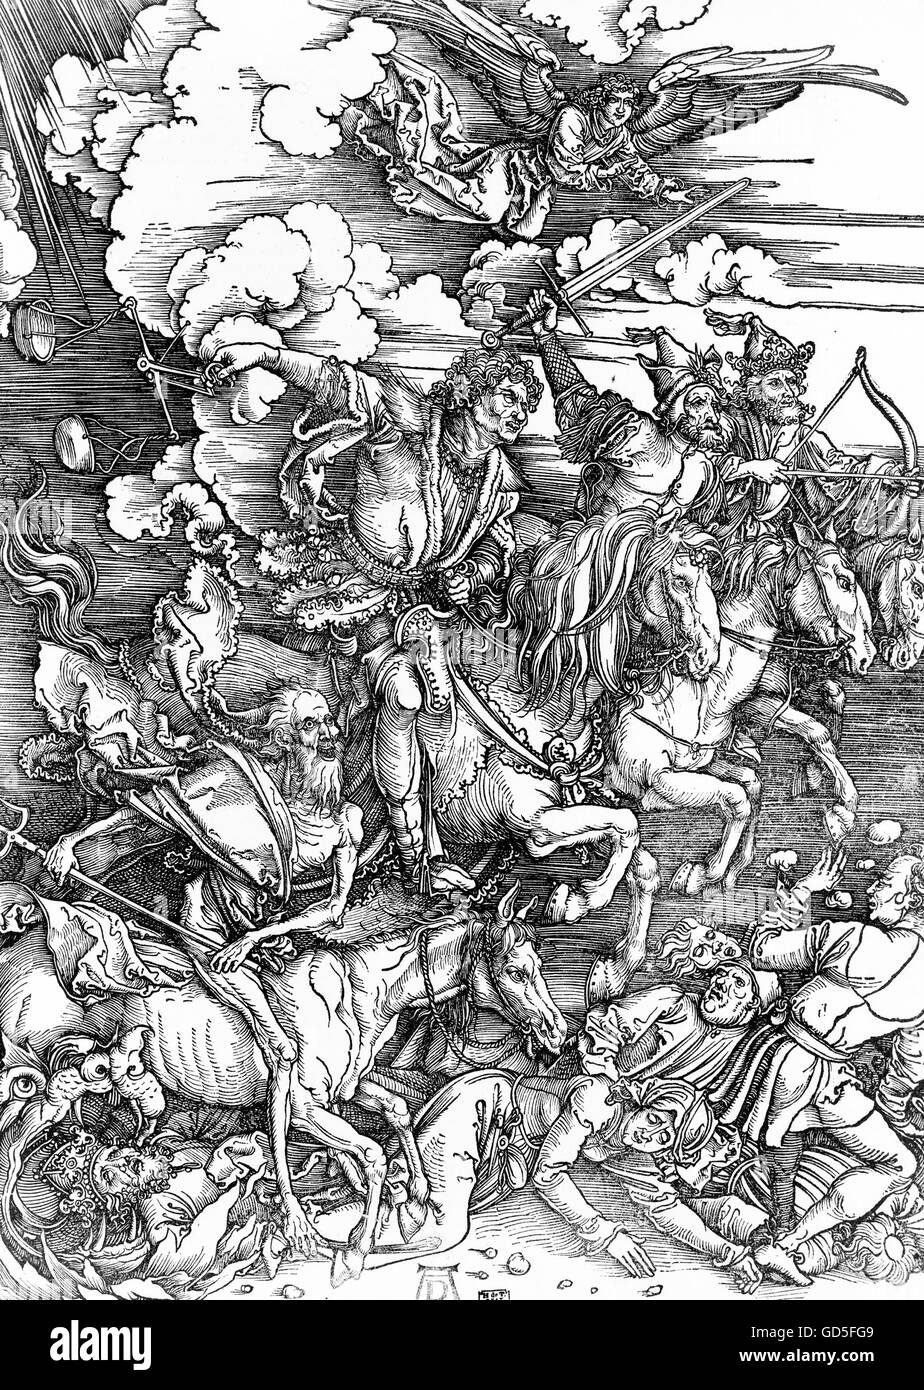 Four Horsemen of the Apocalypse by Albrecht Dürer, 1511, woodcut print. - Stock Image